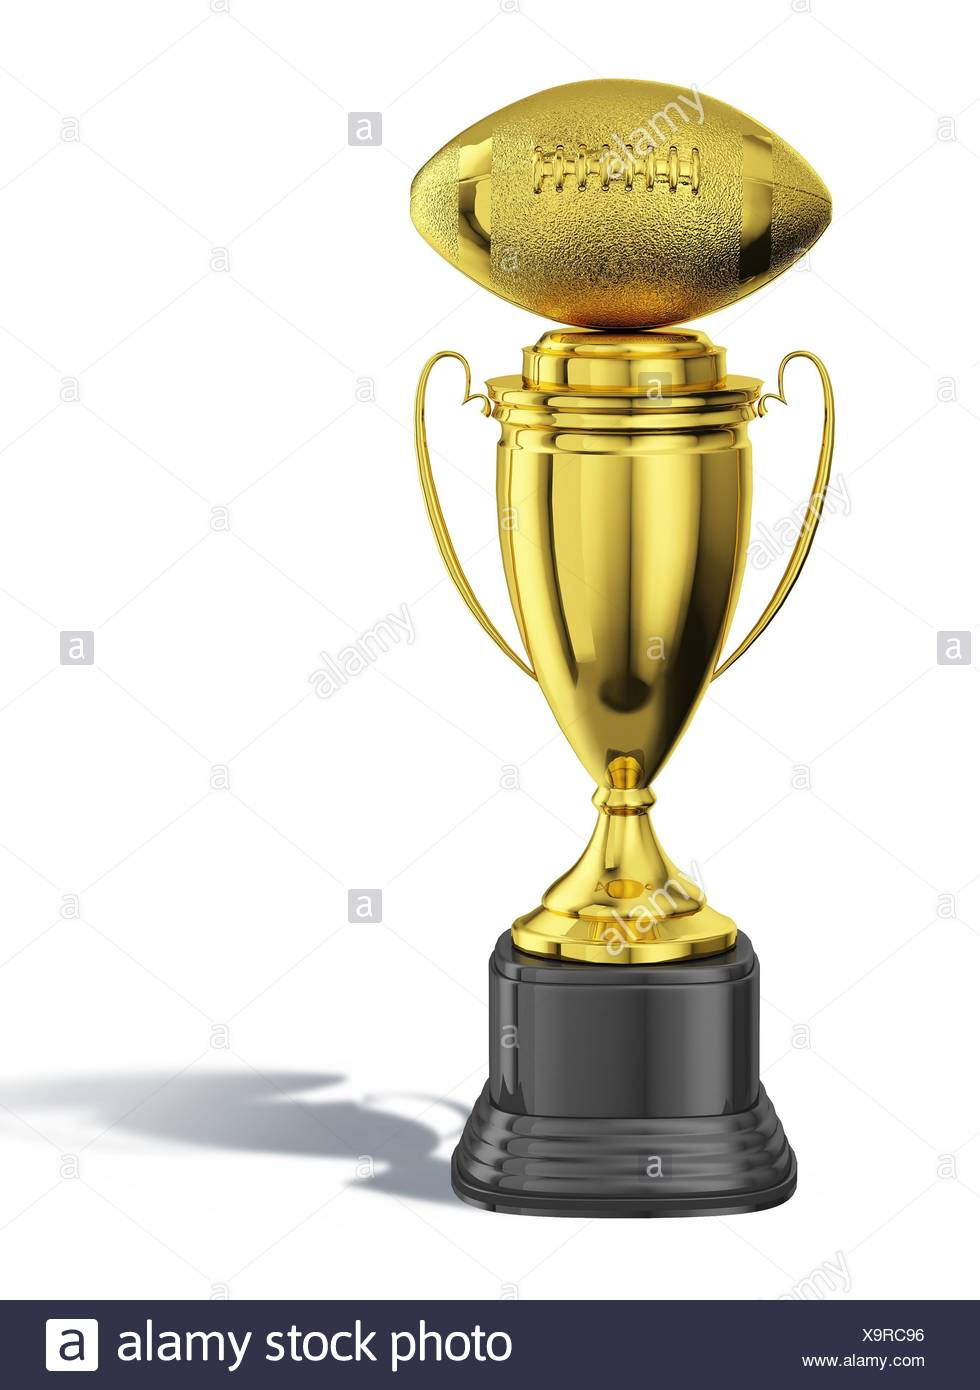 Trophy Cup With An American Football Ball At The Top All In Gold With Black Basement